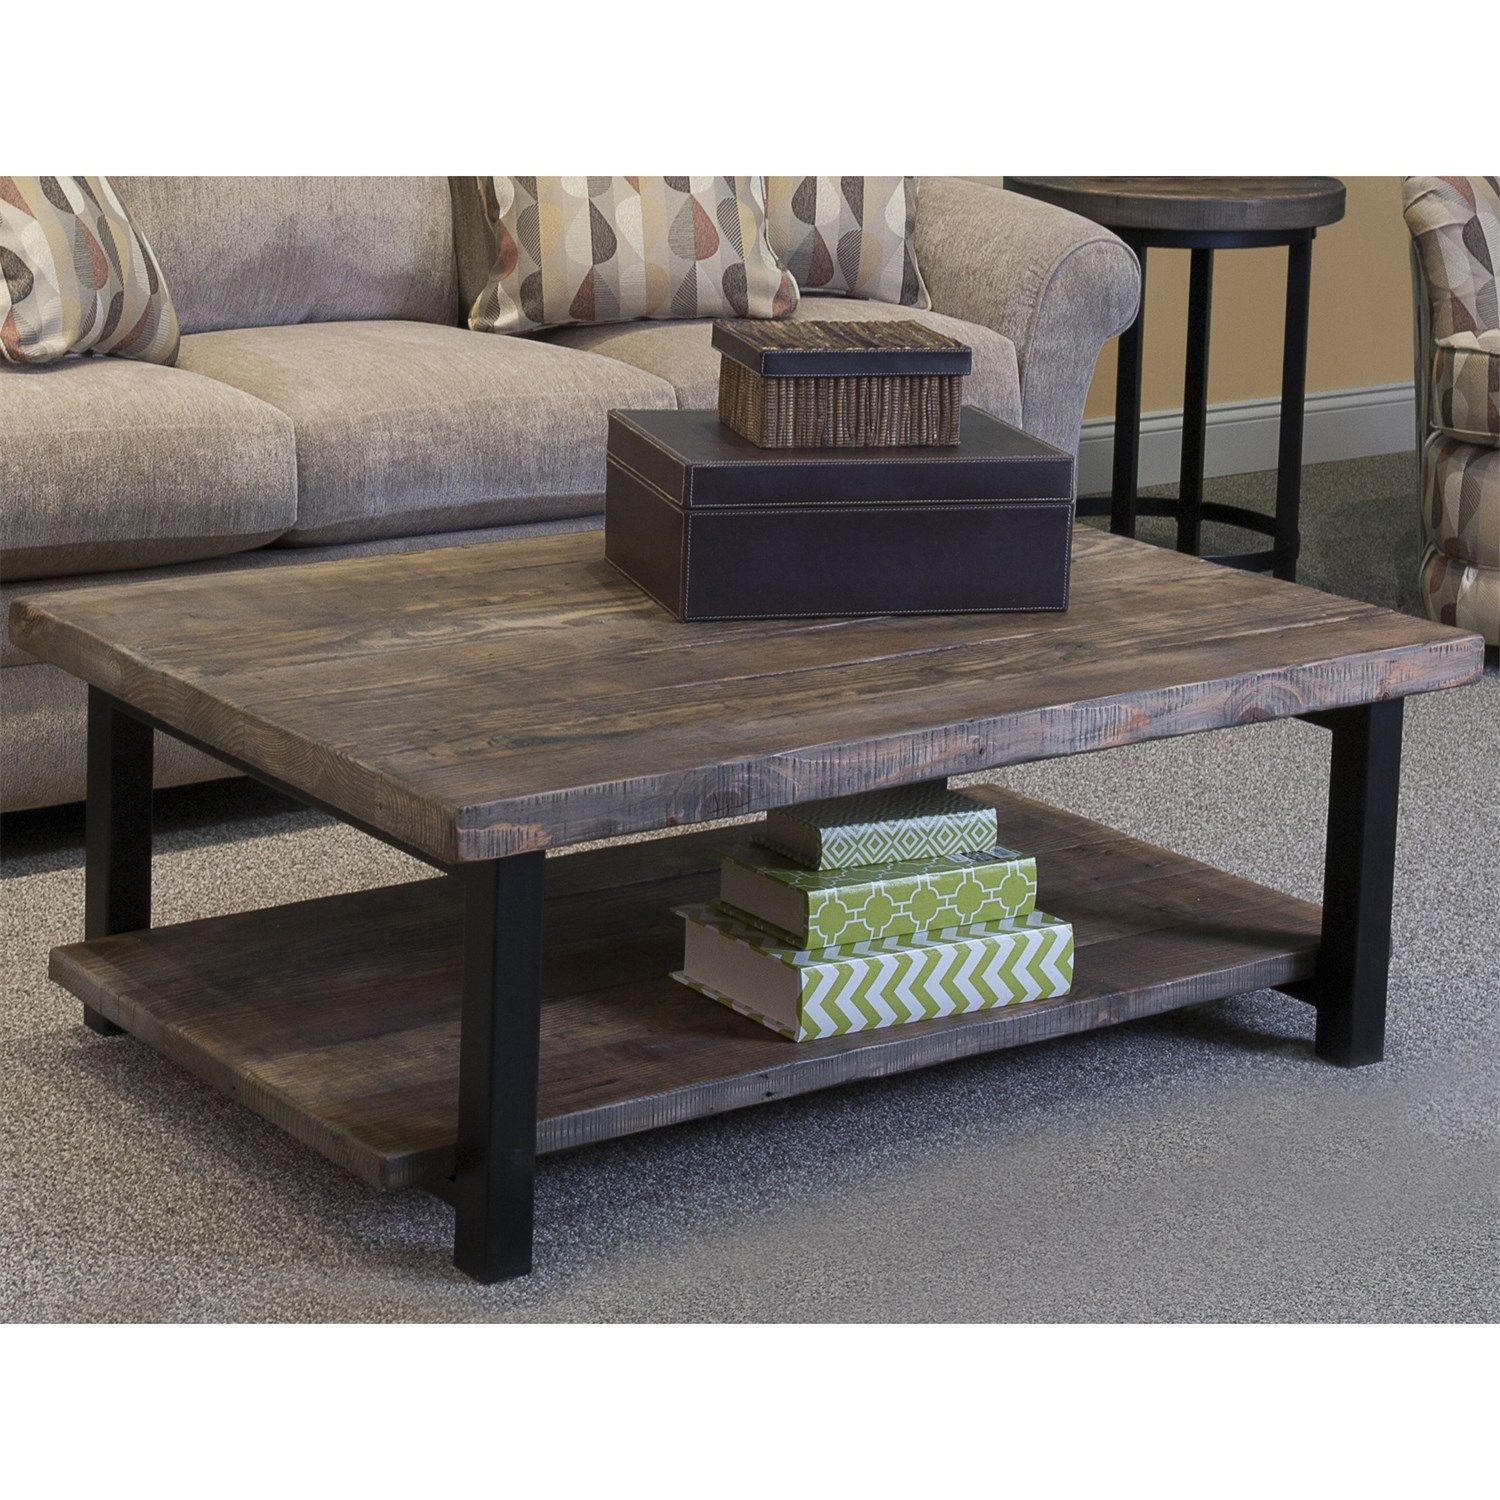 Alaterre Amba1220 Pomona Large Coffee Table In Rustic Natural